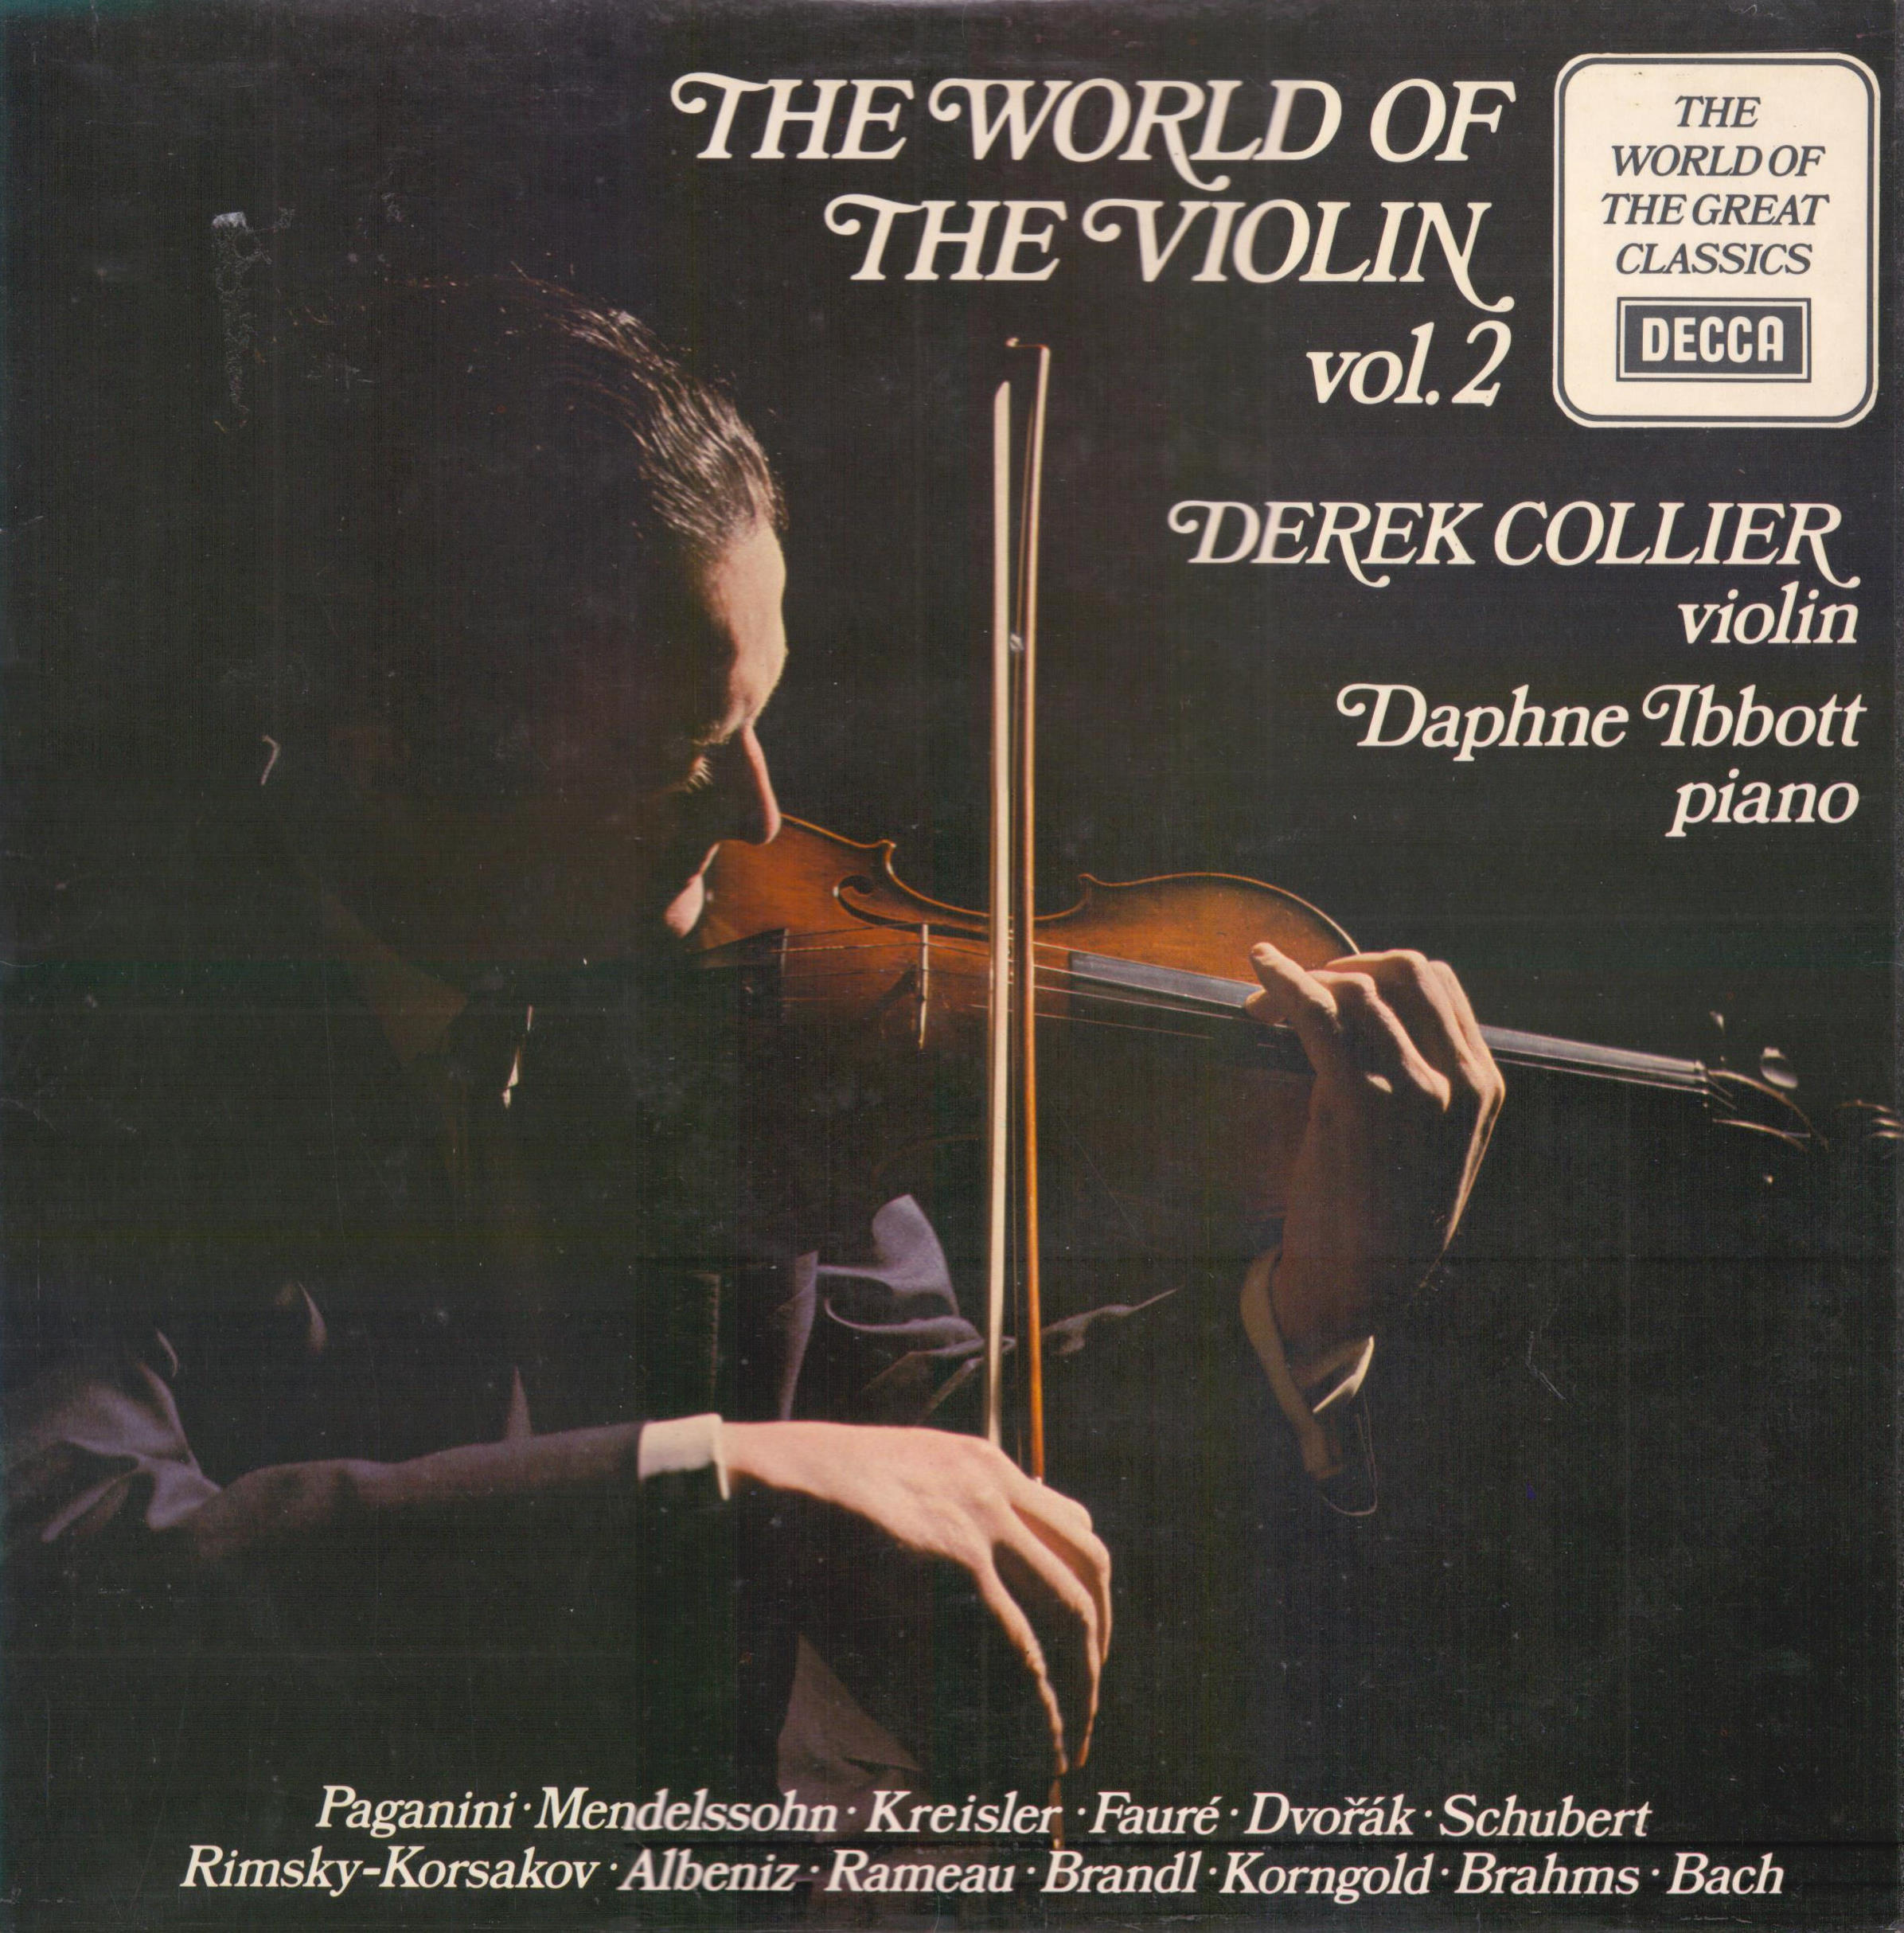 DEREK COLLIER DAPHNE IBBOTT - The World Of The Violin (Vol. 2) - 33T